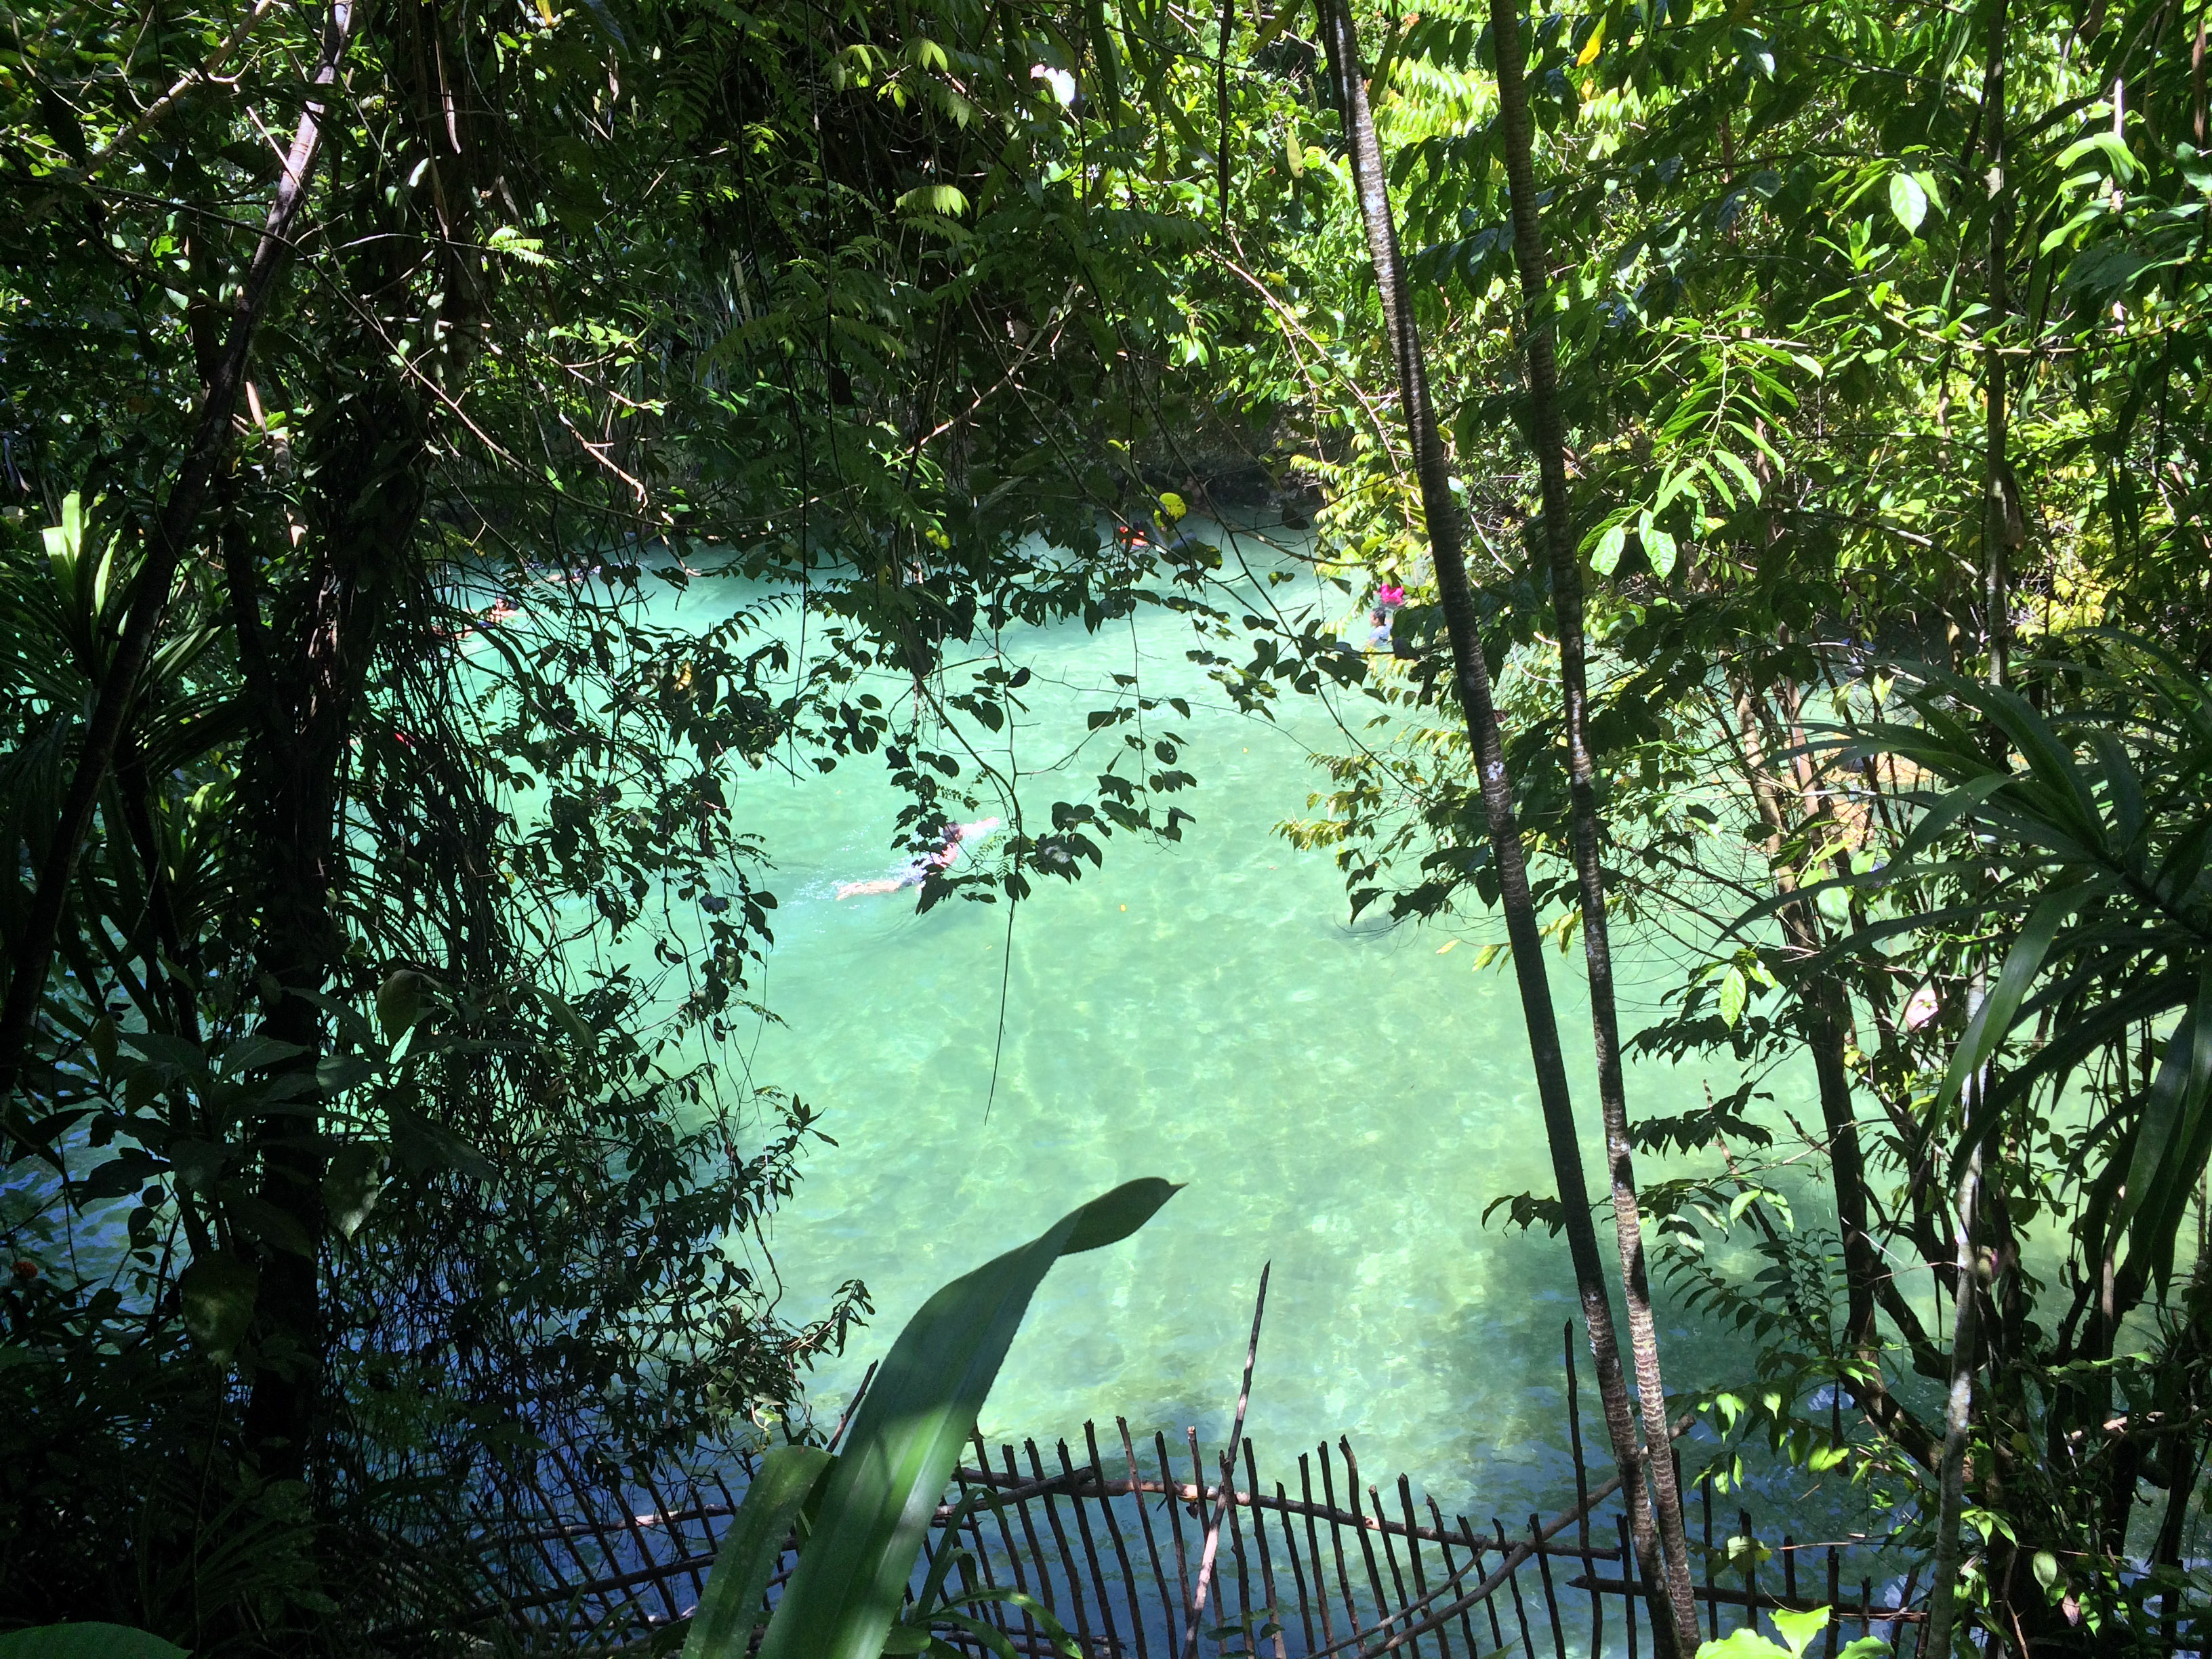 enchanted river upstream